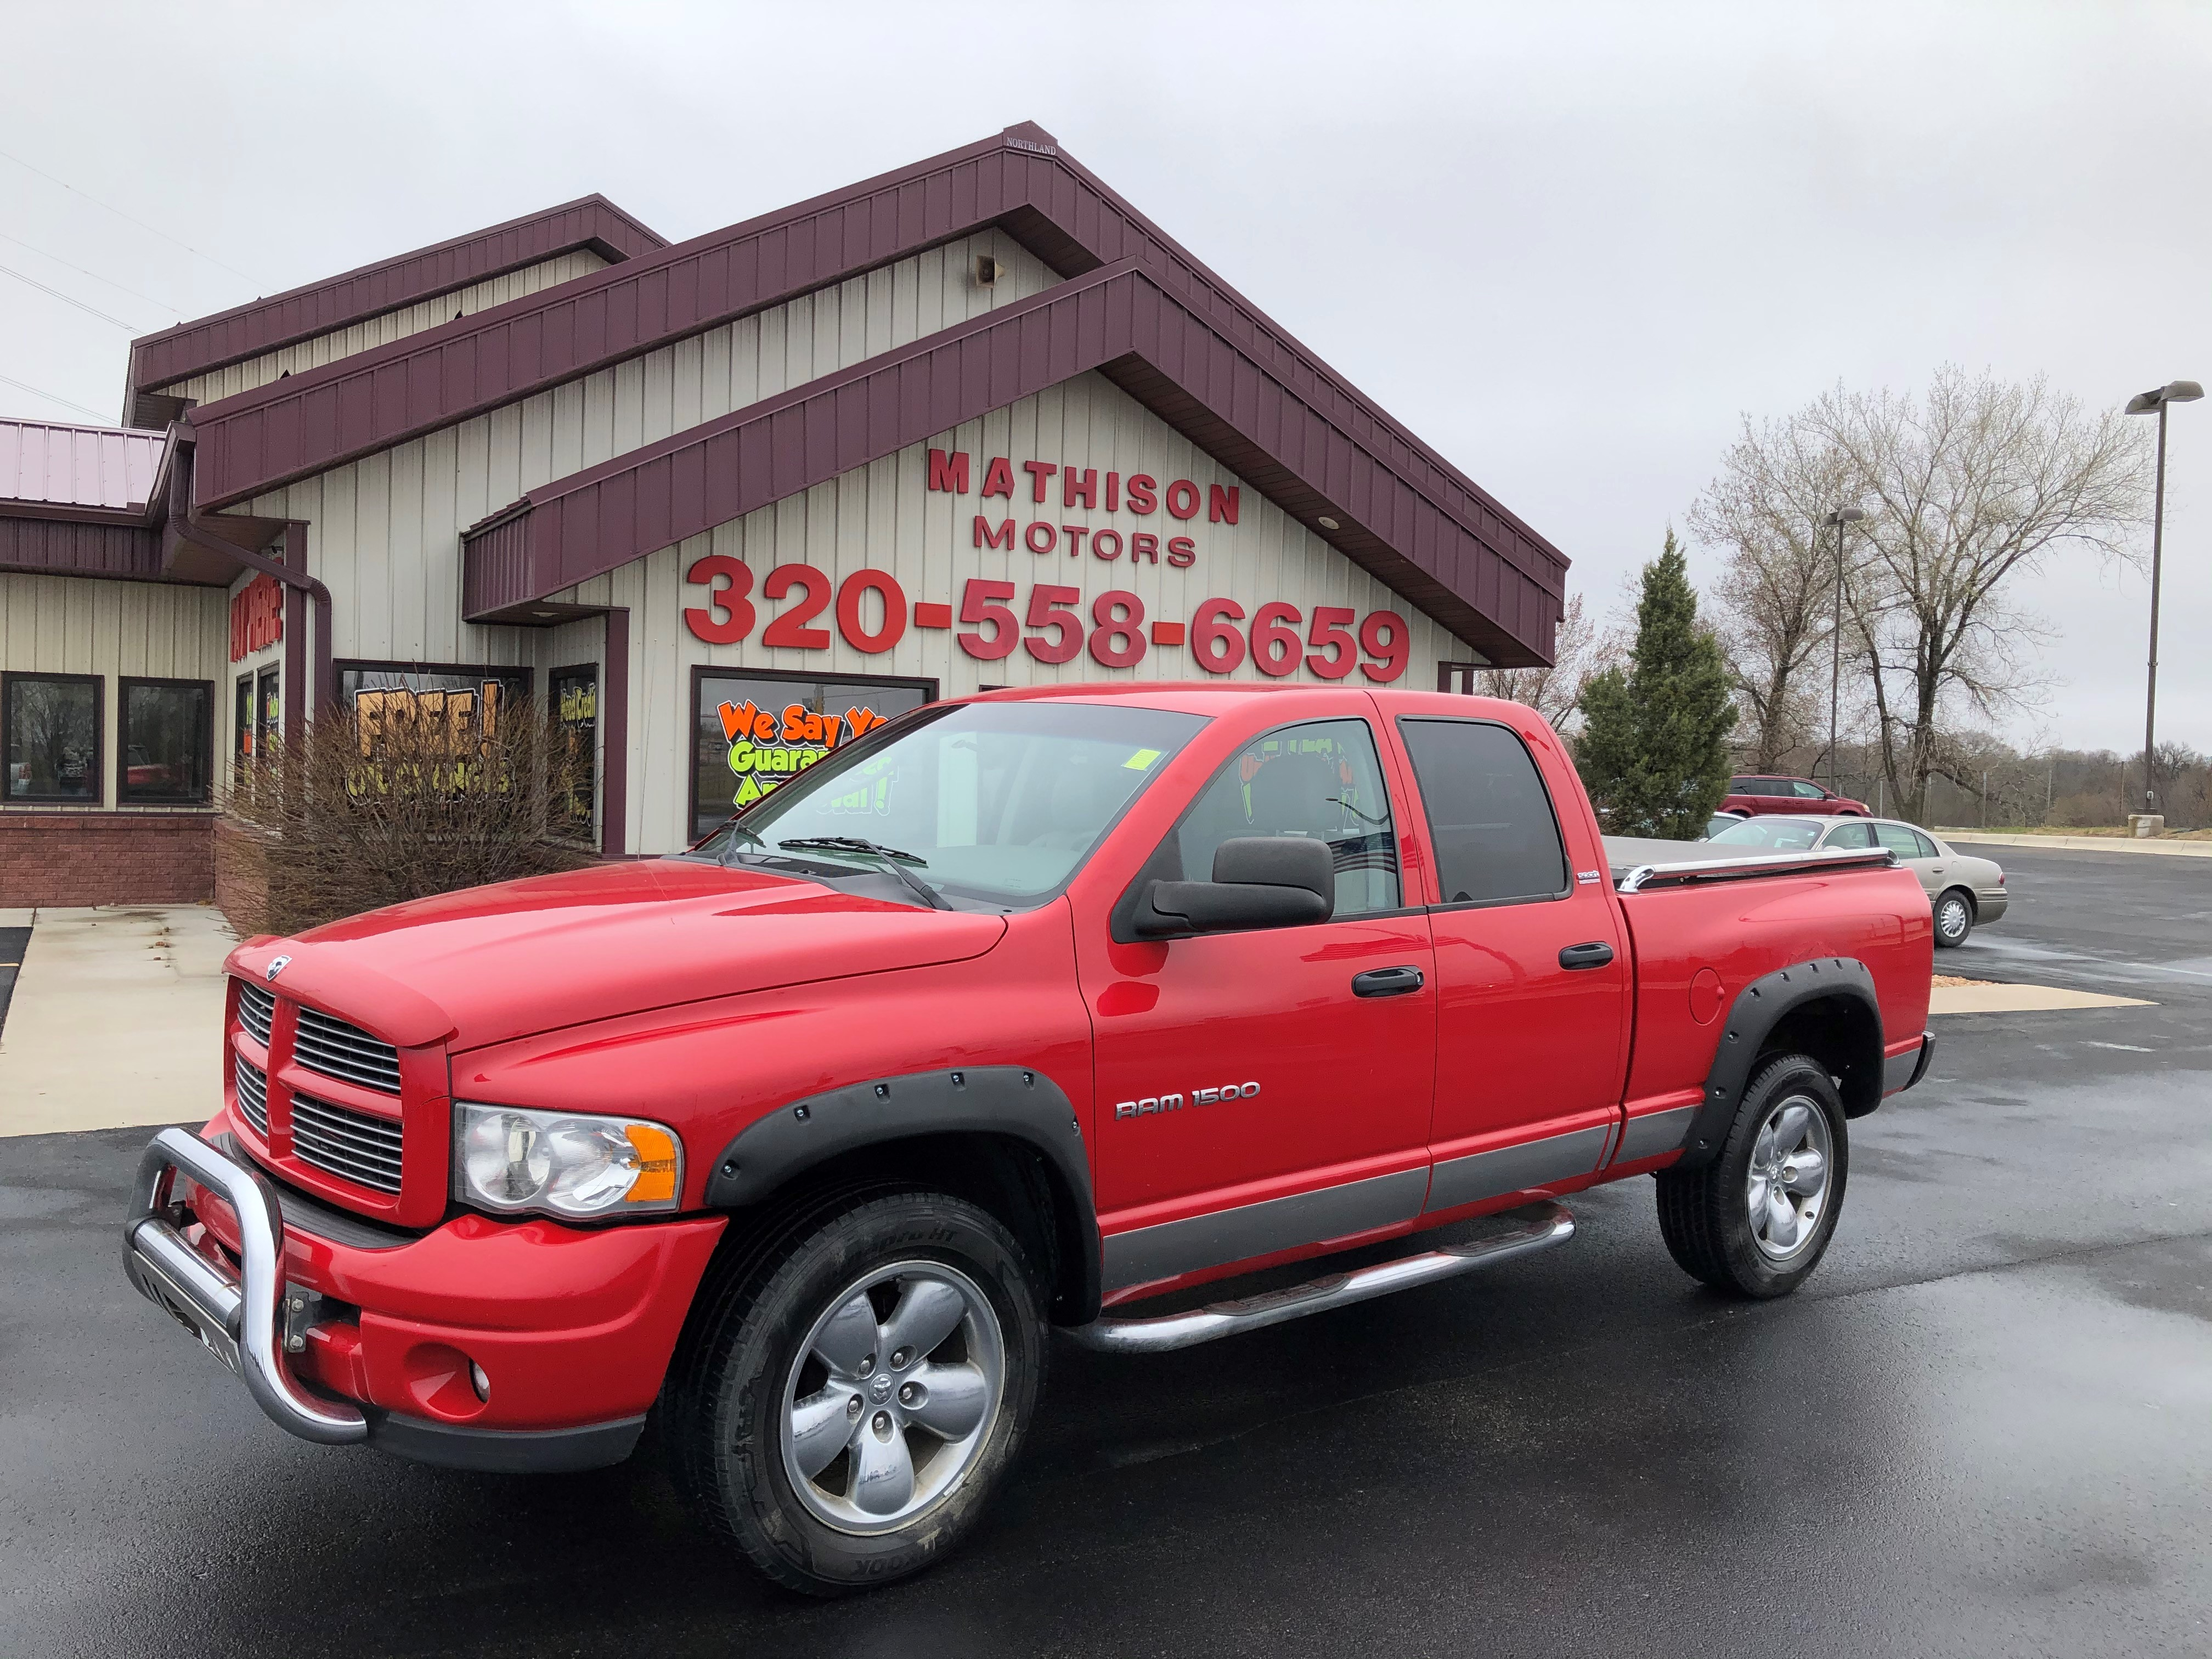 used vehicle - Truck DODGE RAM 1500 2002